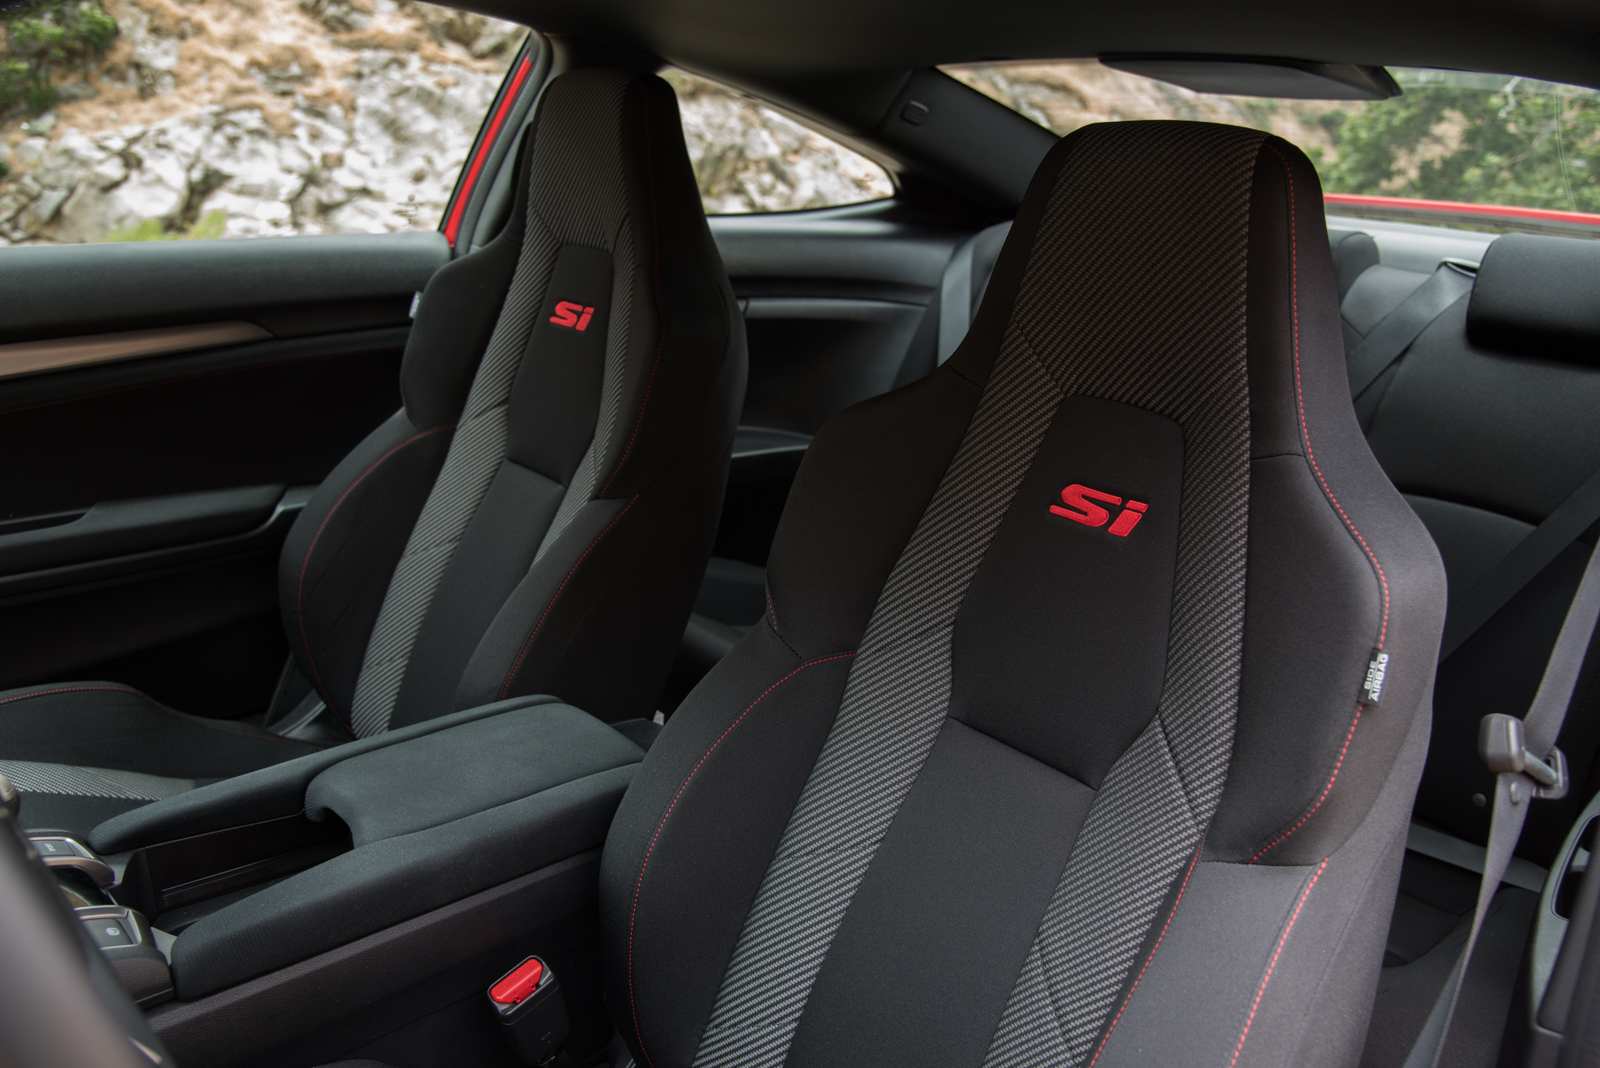 honda civic si seat covers 2017 velcromag. Black Bedroom Furniture Sets. Home Design Ideas